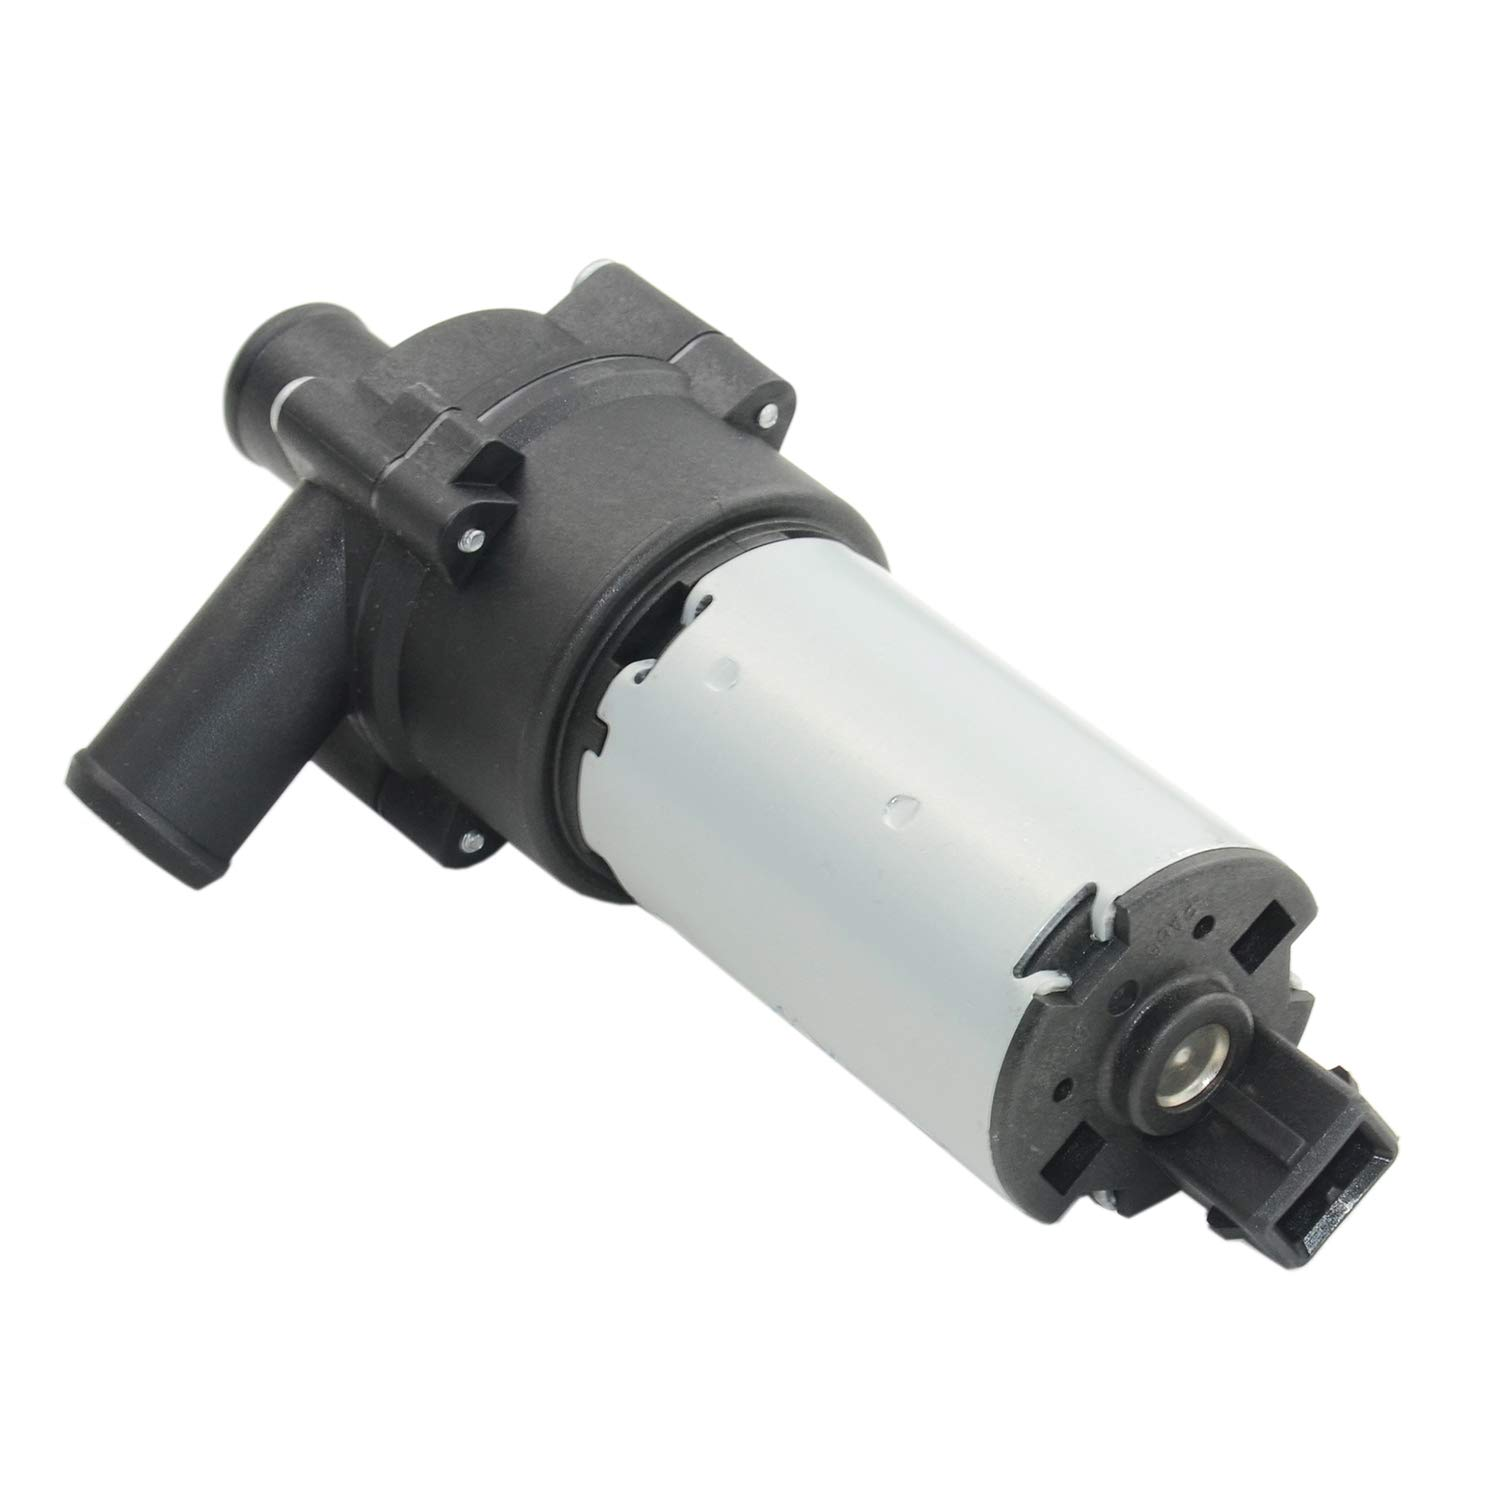 For W163 Climate Control Engine Auxiliary Water Pump 0018356064 0392020044 A0018356064